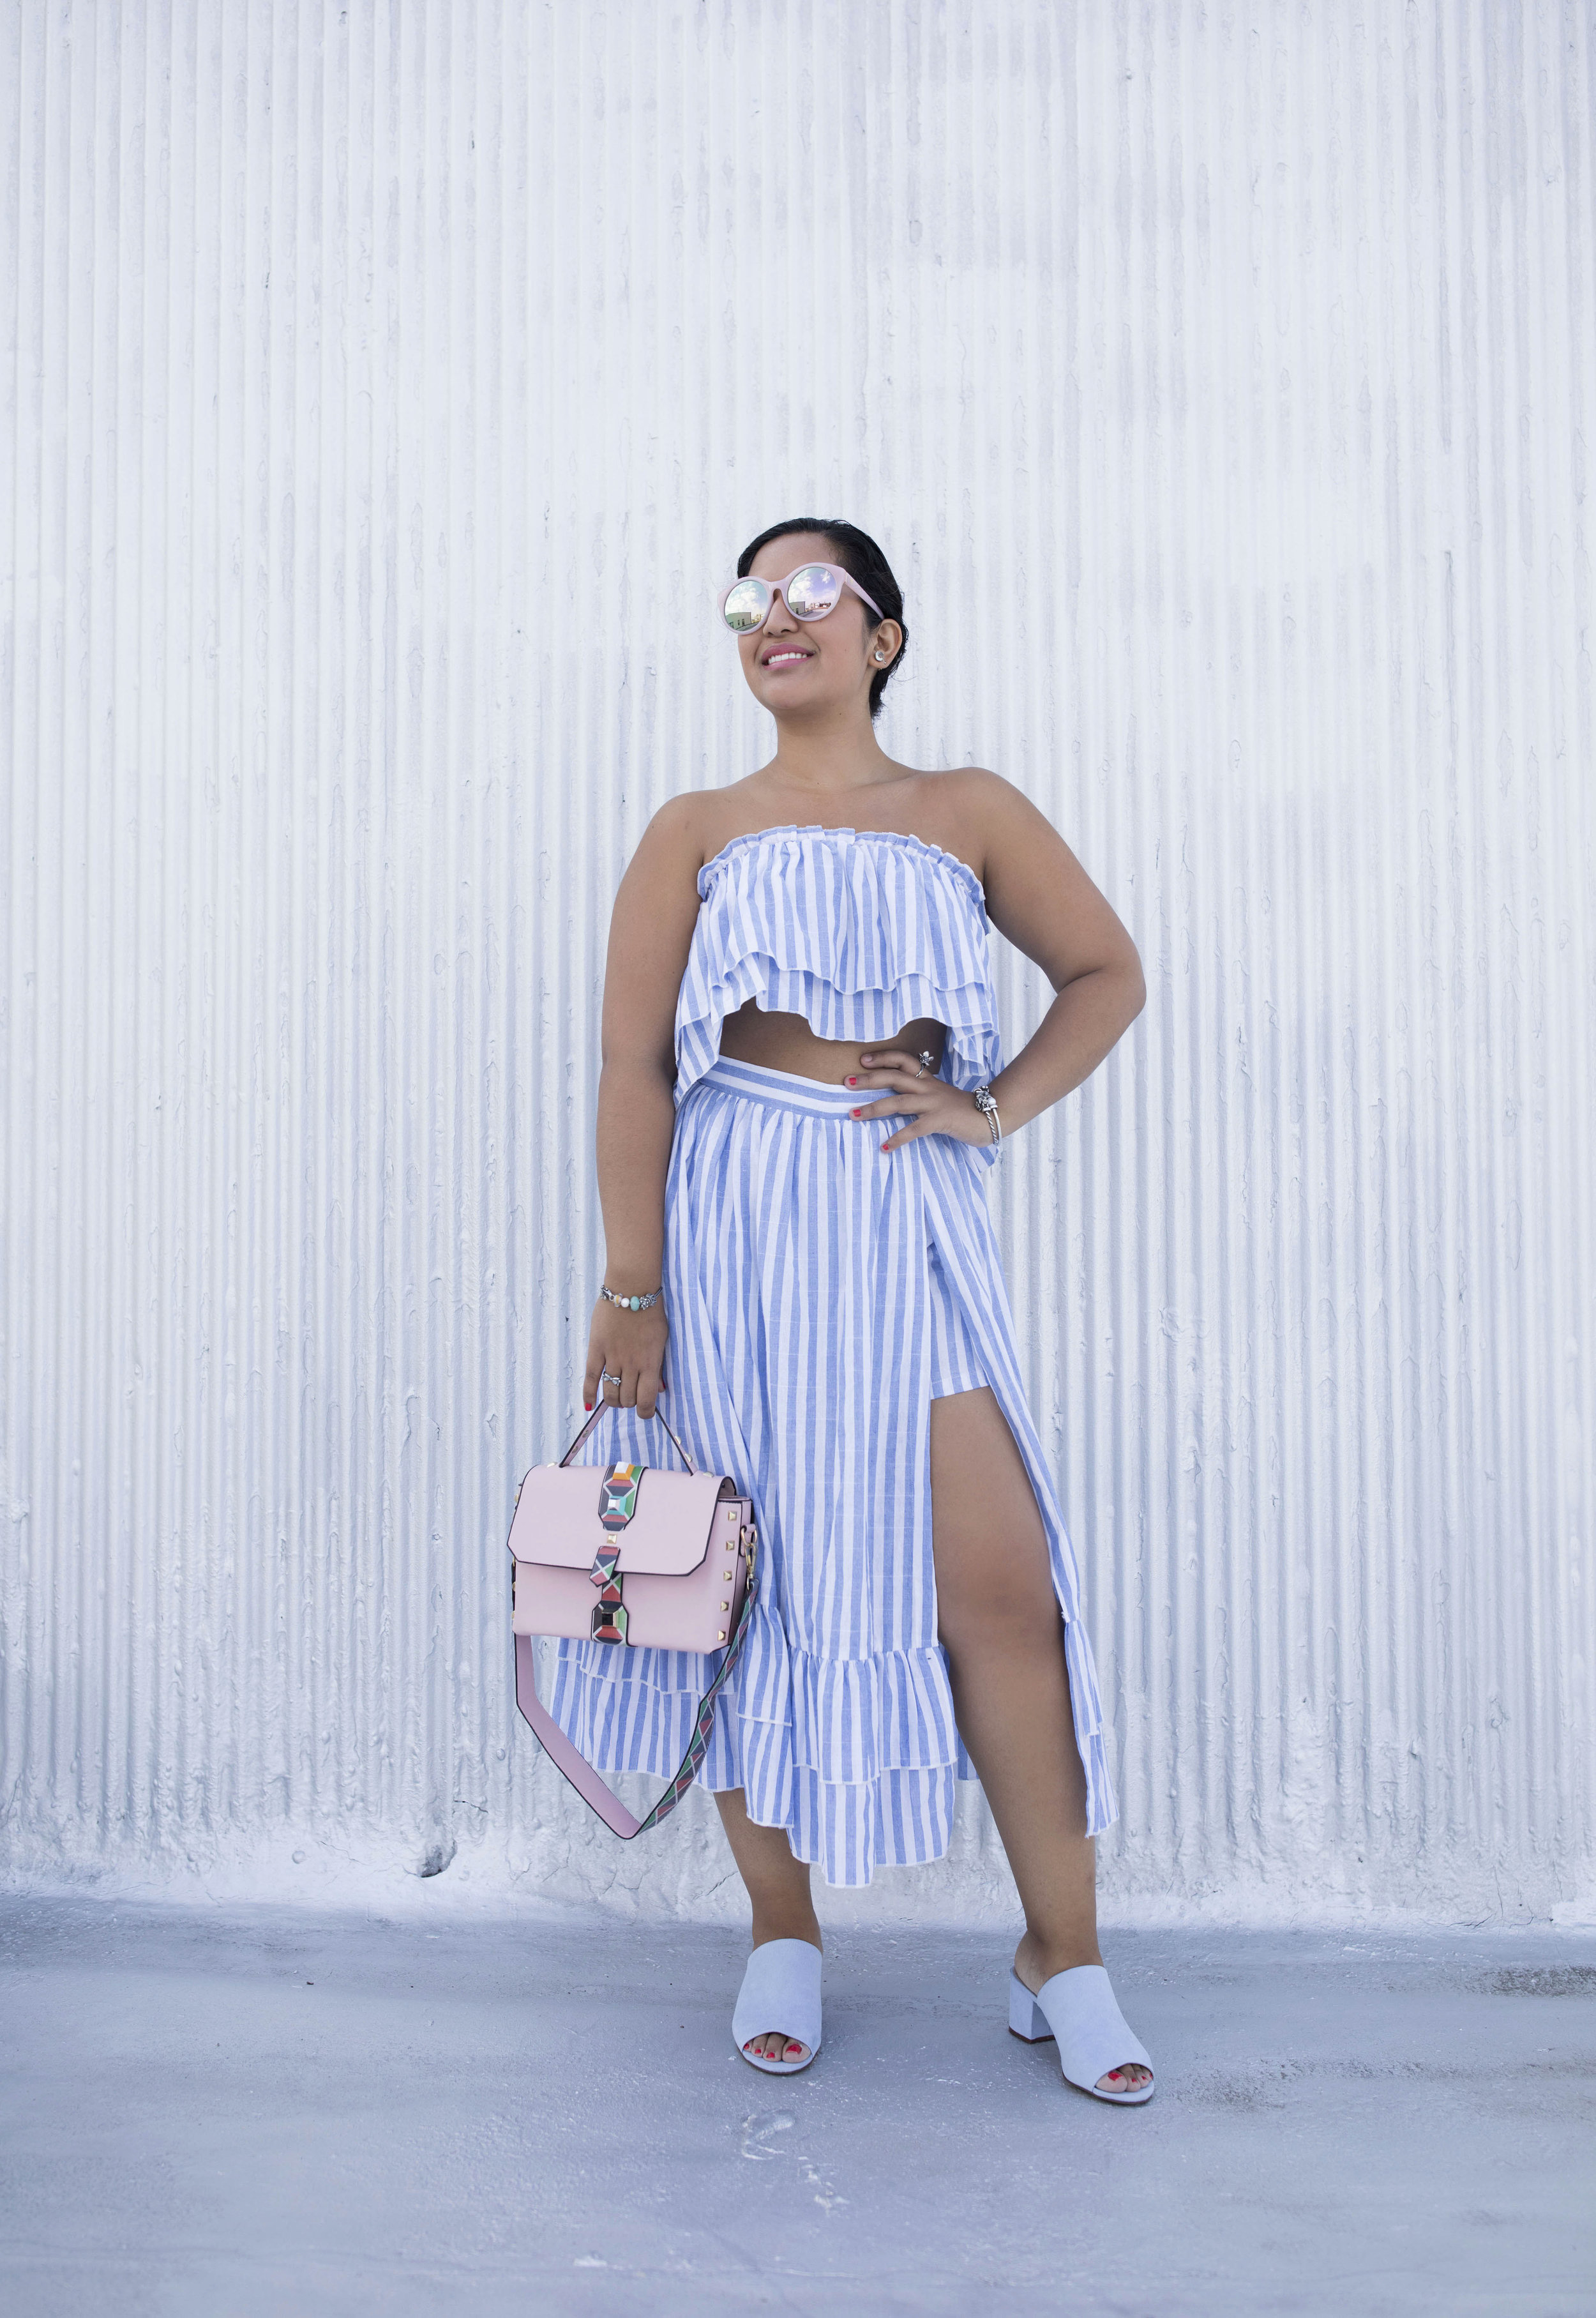 Krity S x SheIn x 2 piece stripped set2.jpg